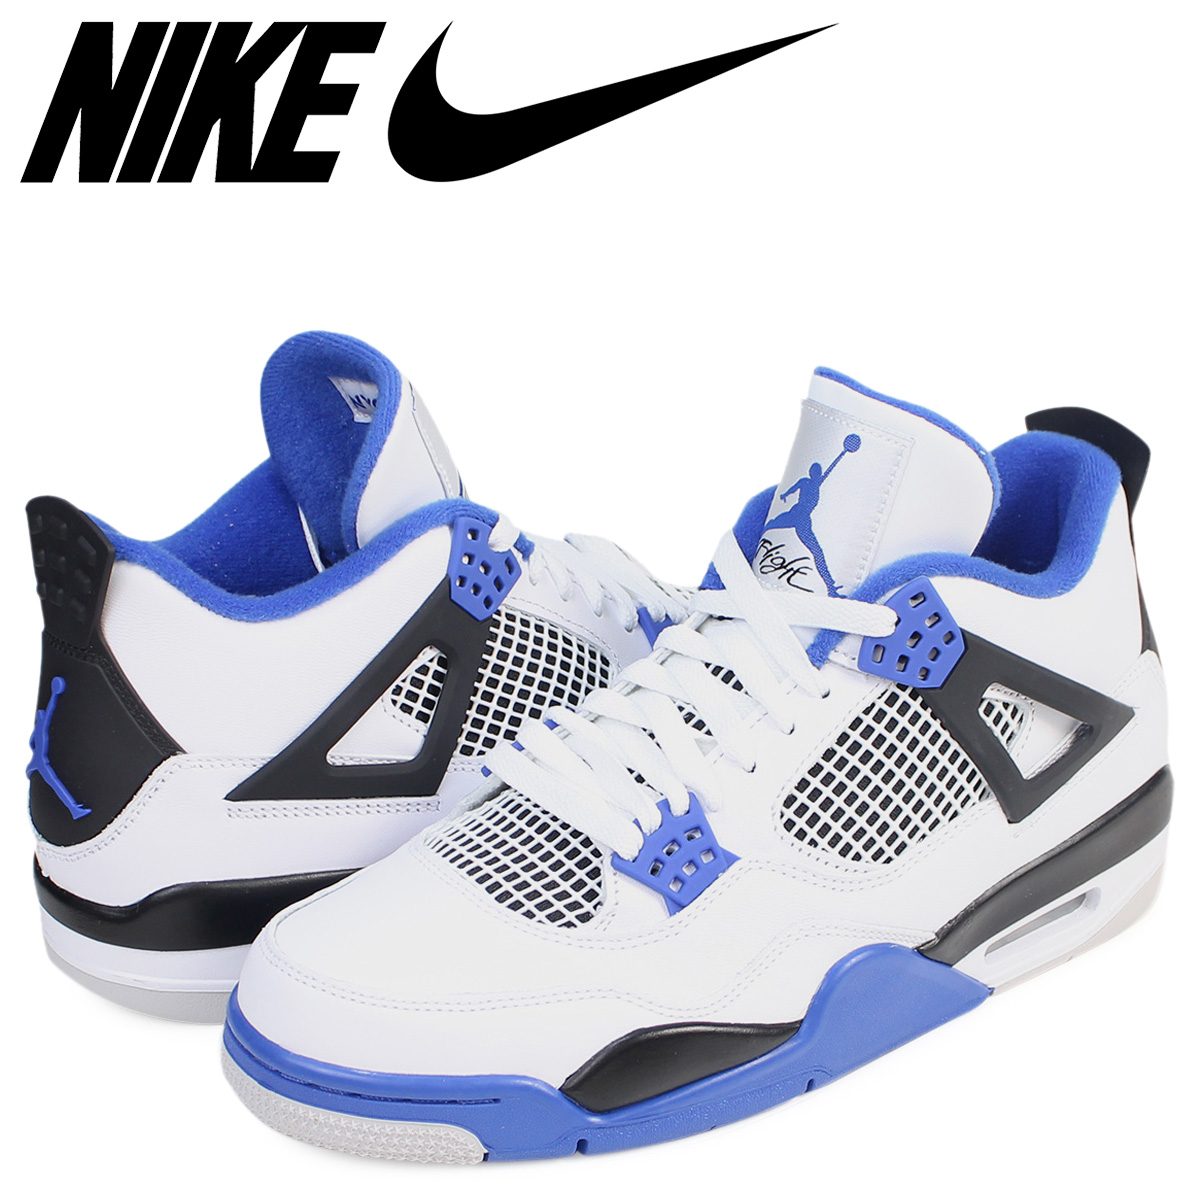 newest collection 25df8 0a2b6 ... where to buy nike nike air jordan 4 nostalgic sneakers air jordan 4  retro motorsport 308497